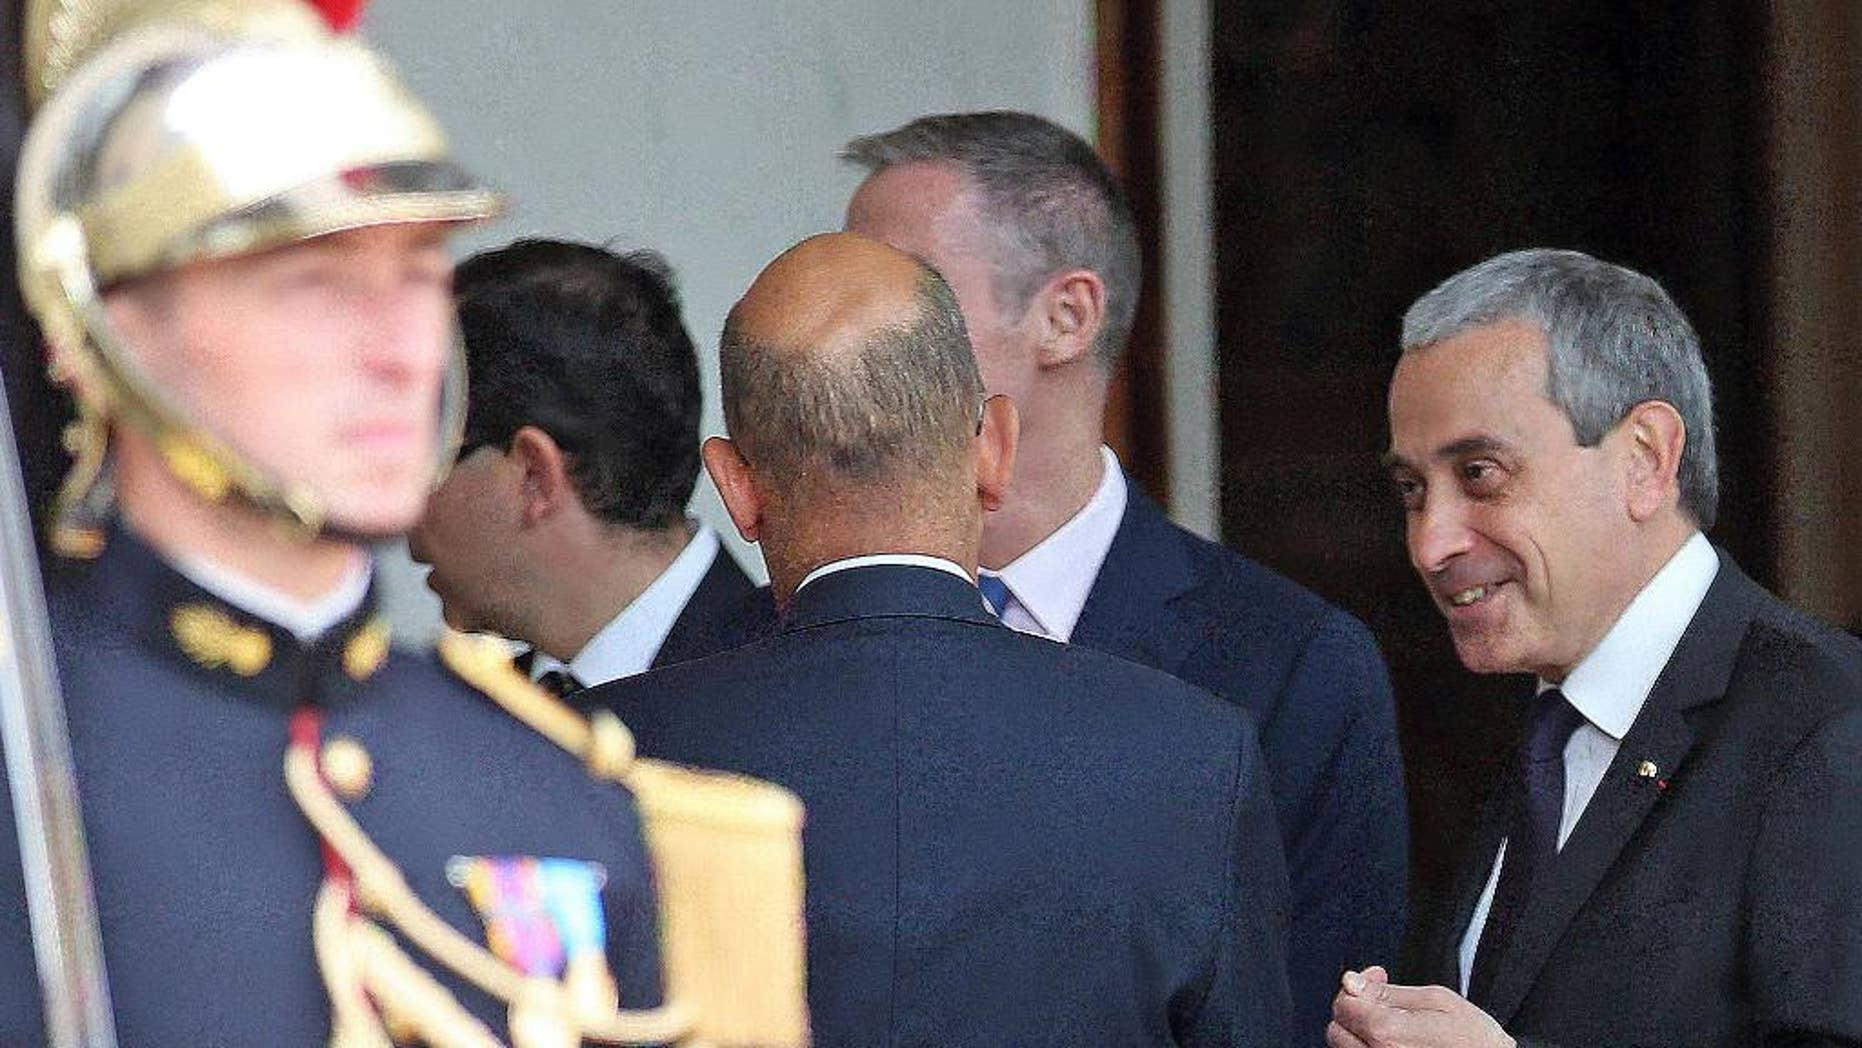 FILE - In this June 2, 2015 file photo chief of protocol at the French presidential palace, Laurent Stefanini, right, speaks with an unidentified person at the Elysee Palace in Paris. France's government has named a respected diplomat who is said to be gay as the country's ambassador to UNESCO, several months after he was nominated as ambassador to the Vatican _ a job he never started. (AP Photo/Remy de la Mauviniere, File)